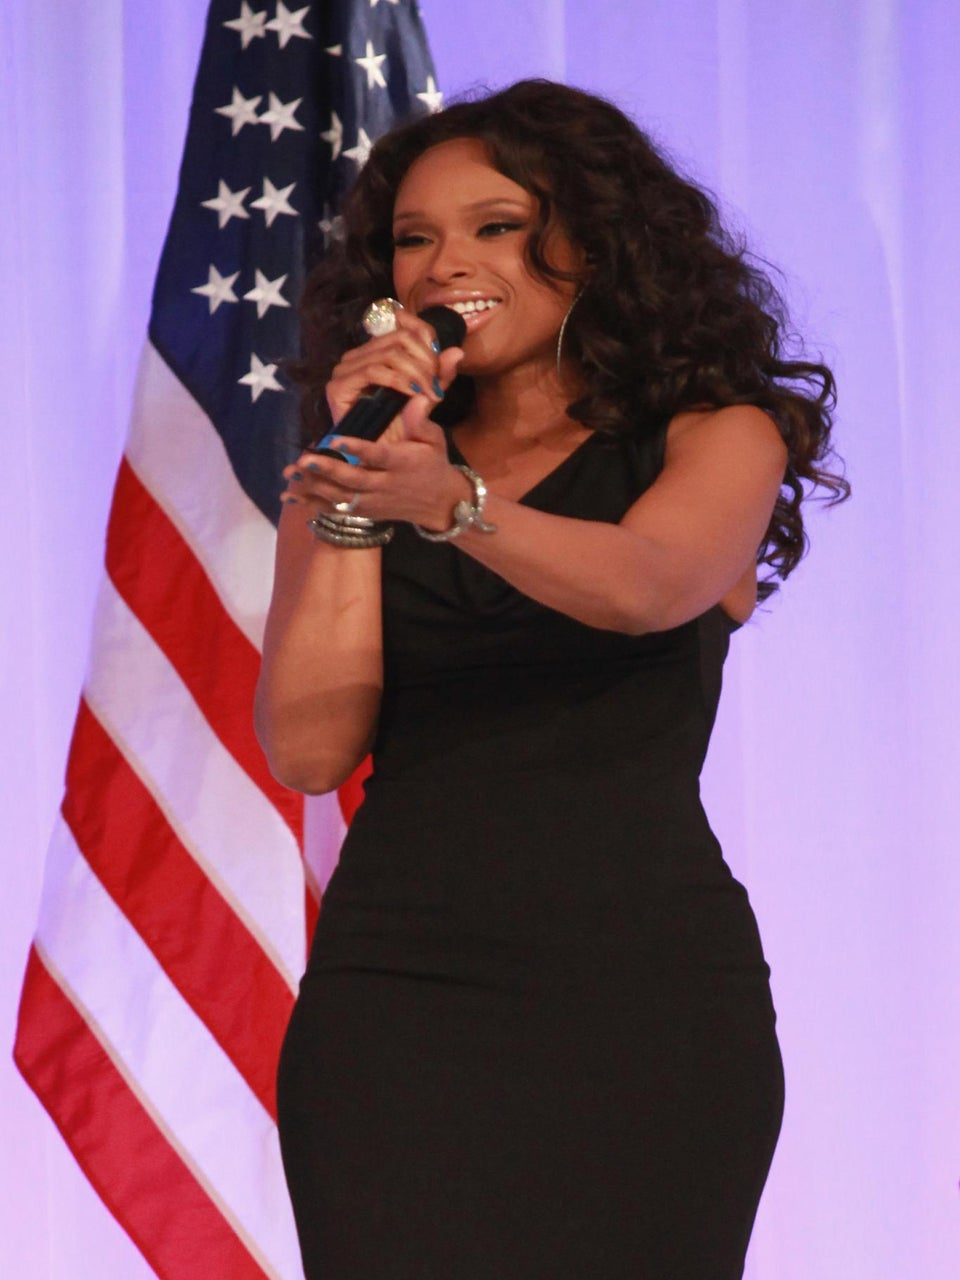 Who Was Your Favorite Performer at President Obama's Inauguration?